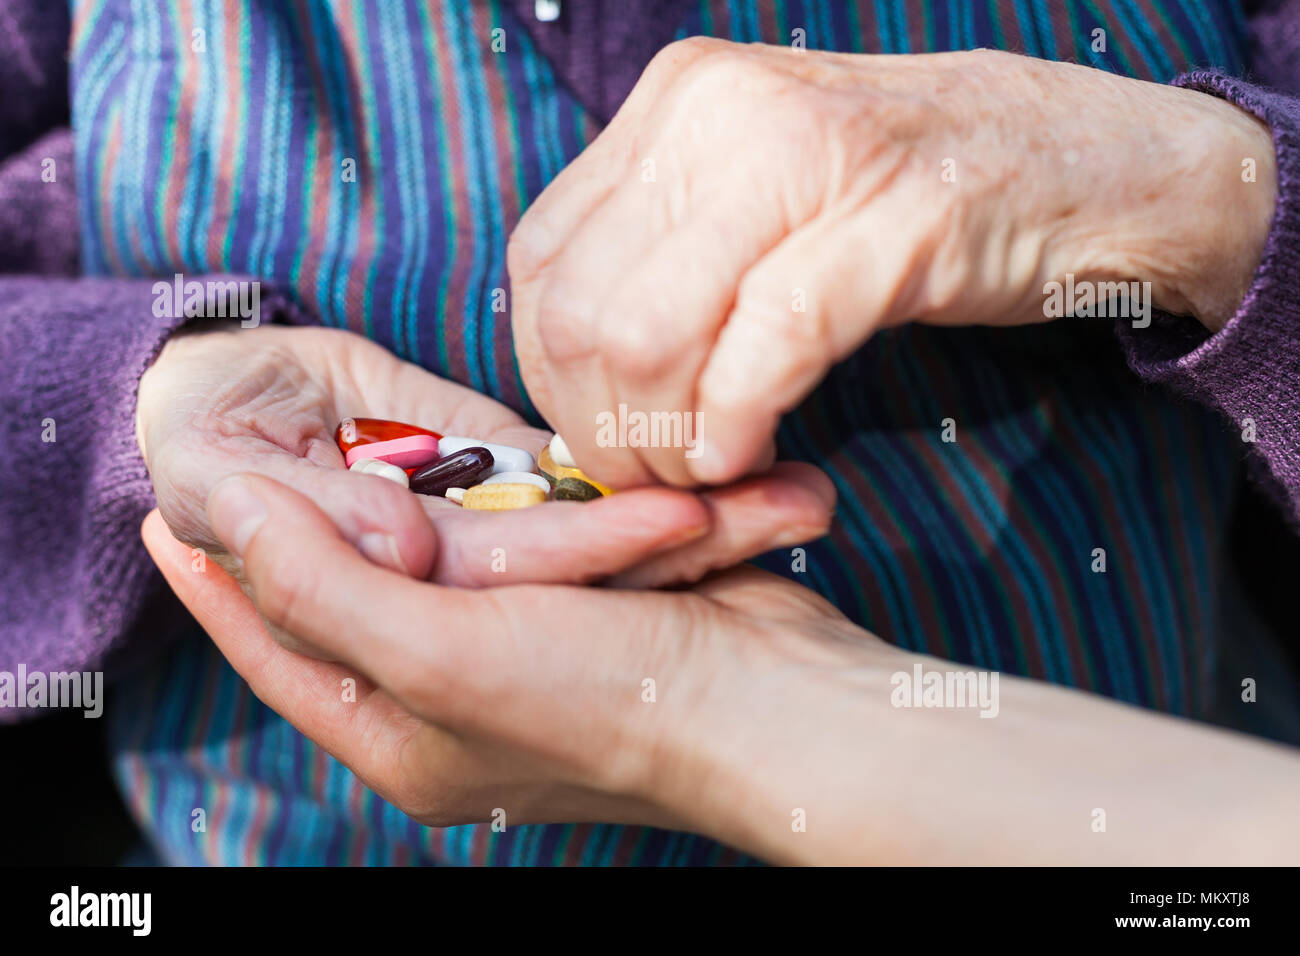 Close up picture of elderly disabled woman's hands receiving medical drugs from caregiver - Stock Image